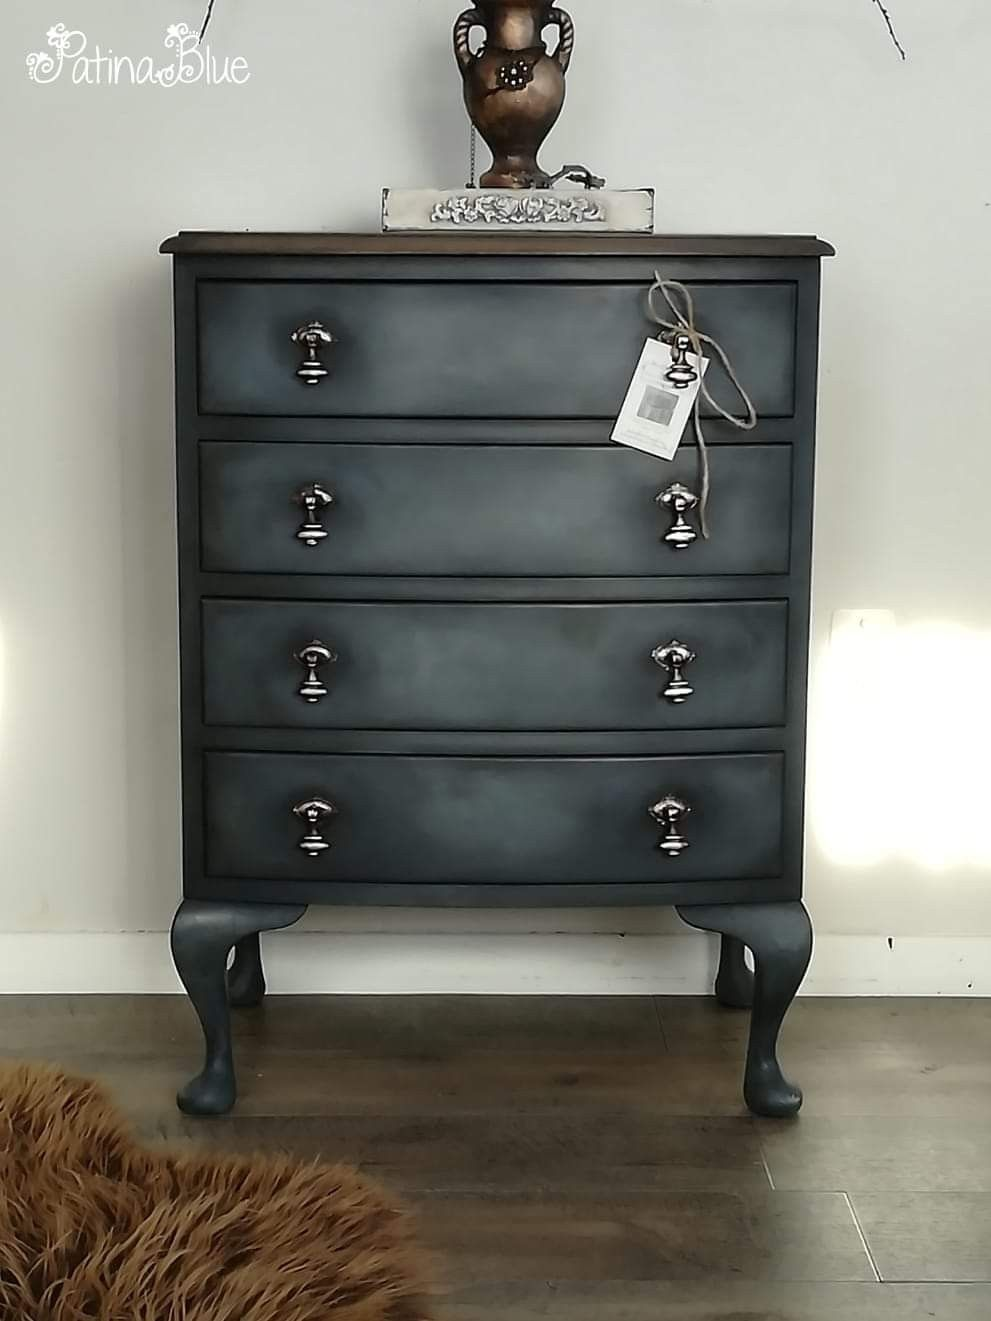 Upcycled Furniture Stores Repurposed Rocking Chair Recycled Refurbished F Annie Sloan Painted Chalk Paint Dresser